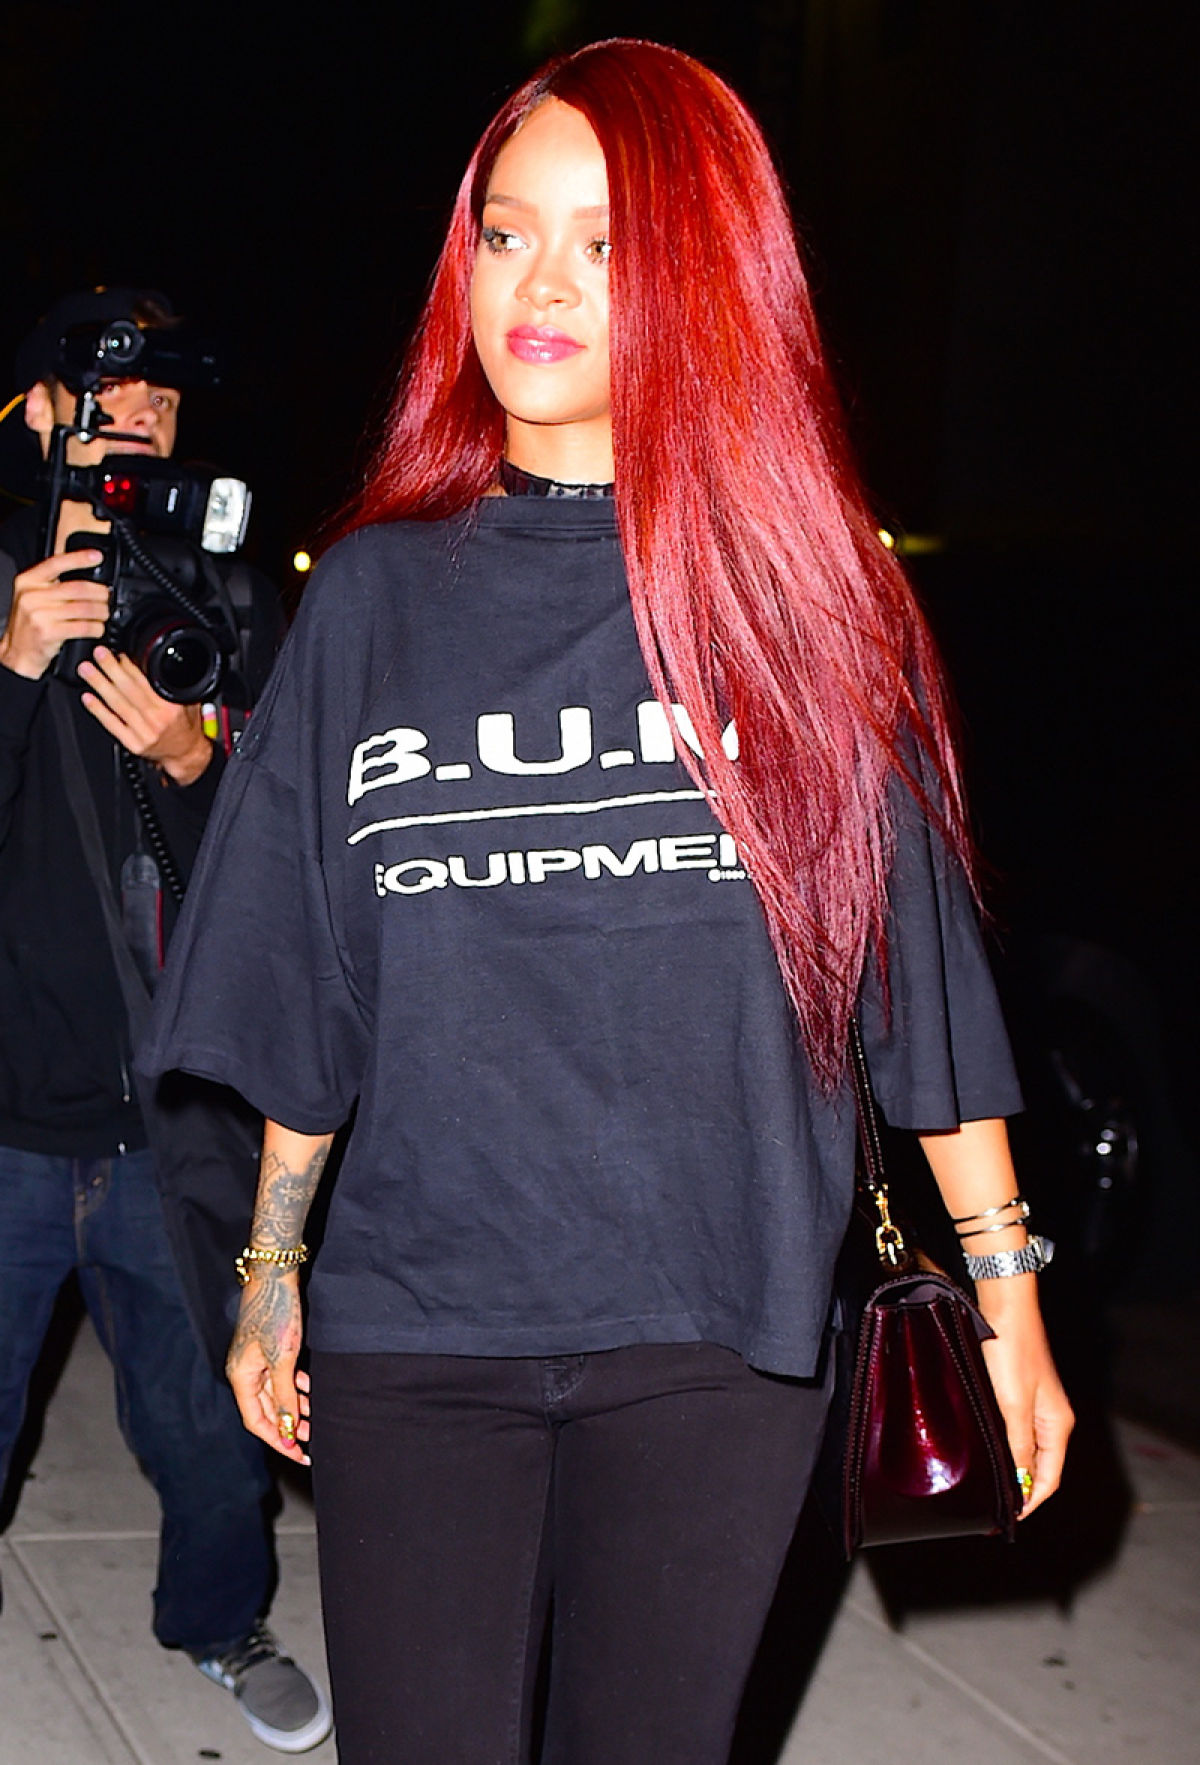 Red Alert: Rihanna's Hair Is Now Brighter & Longer (For Now)